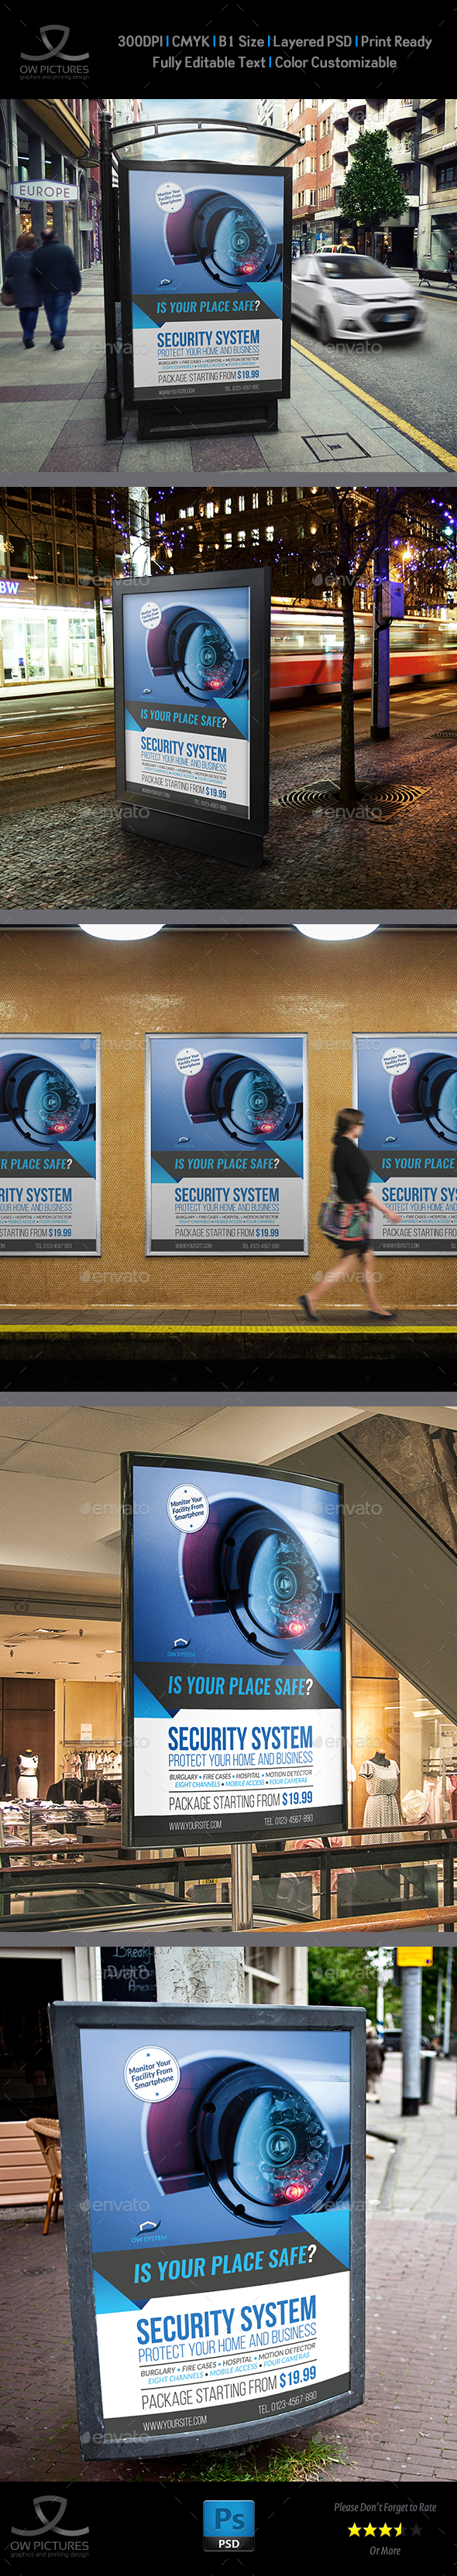 Security System Poster Template Vol.2 - Signage Print Templates